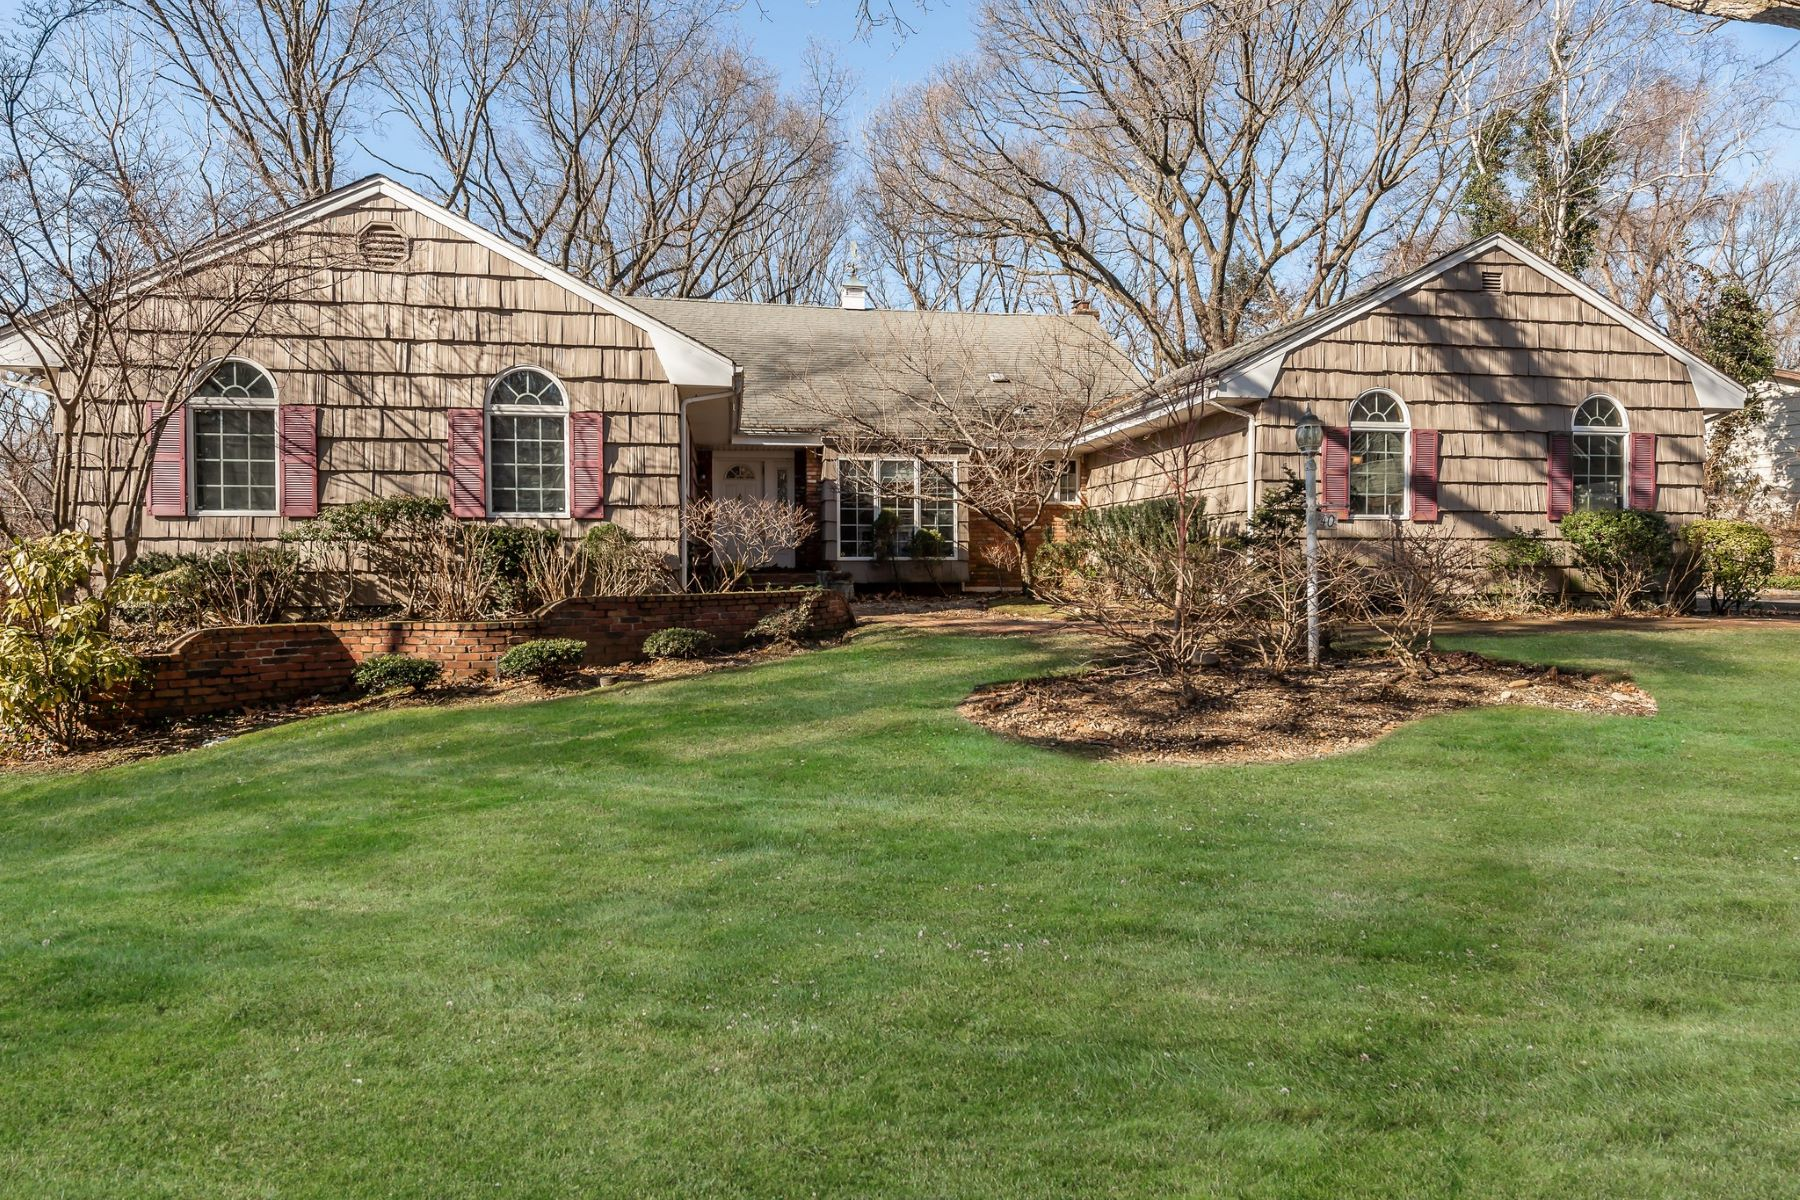 Single Family Homes for Active at East Hills 40 Mimosa Dr East Hills, New York 11576 United States